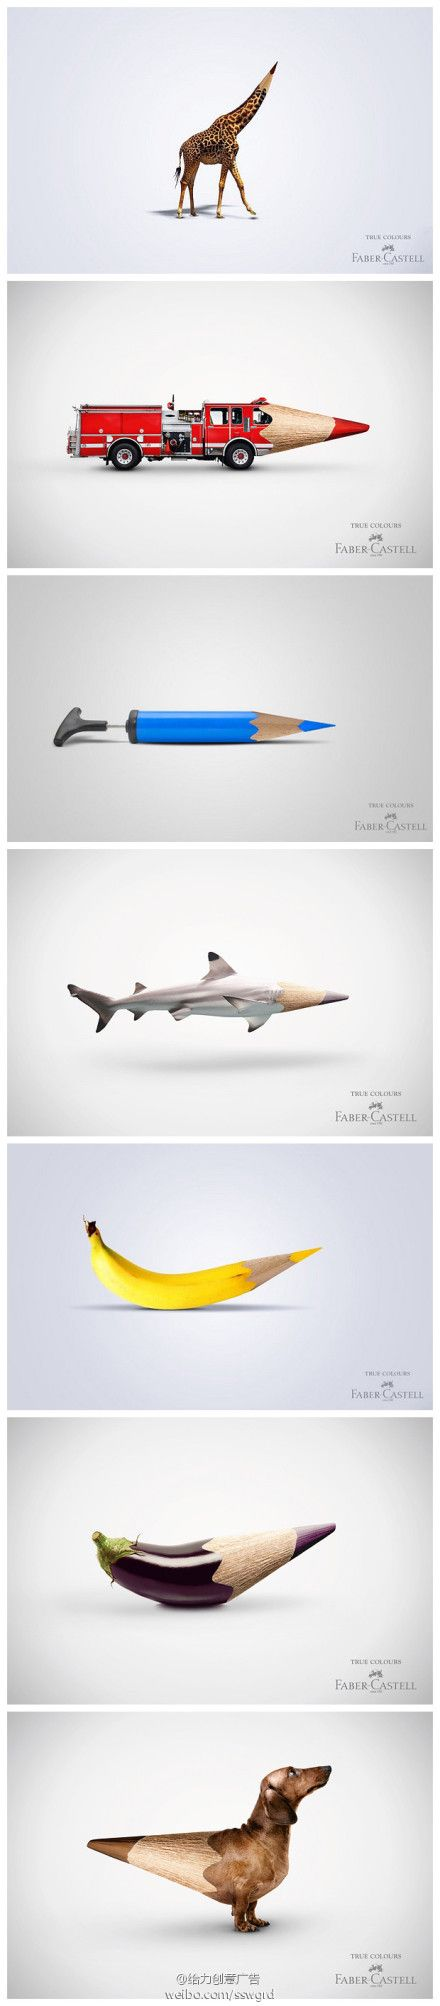 Collection of Faber Castell Ads